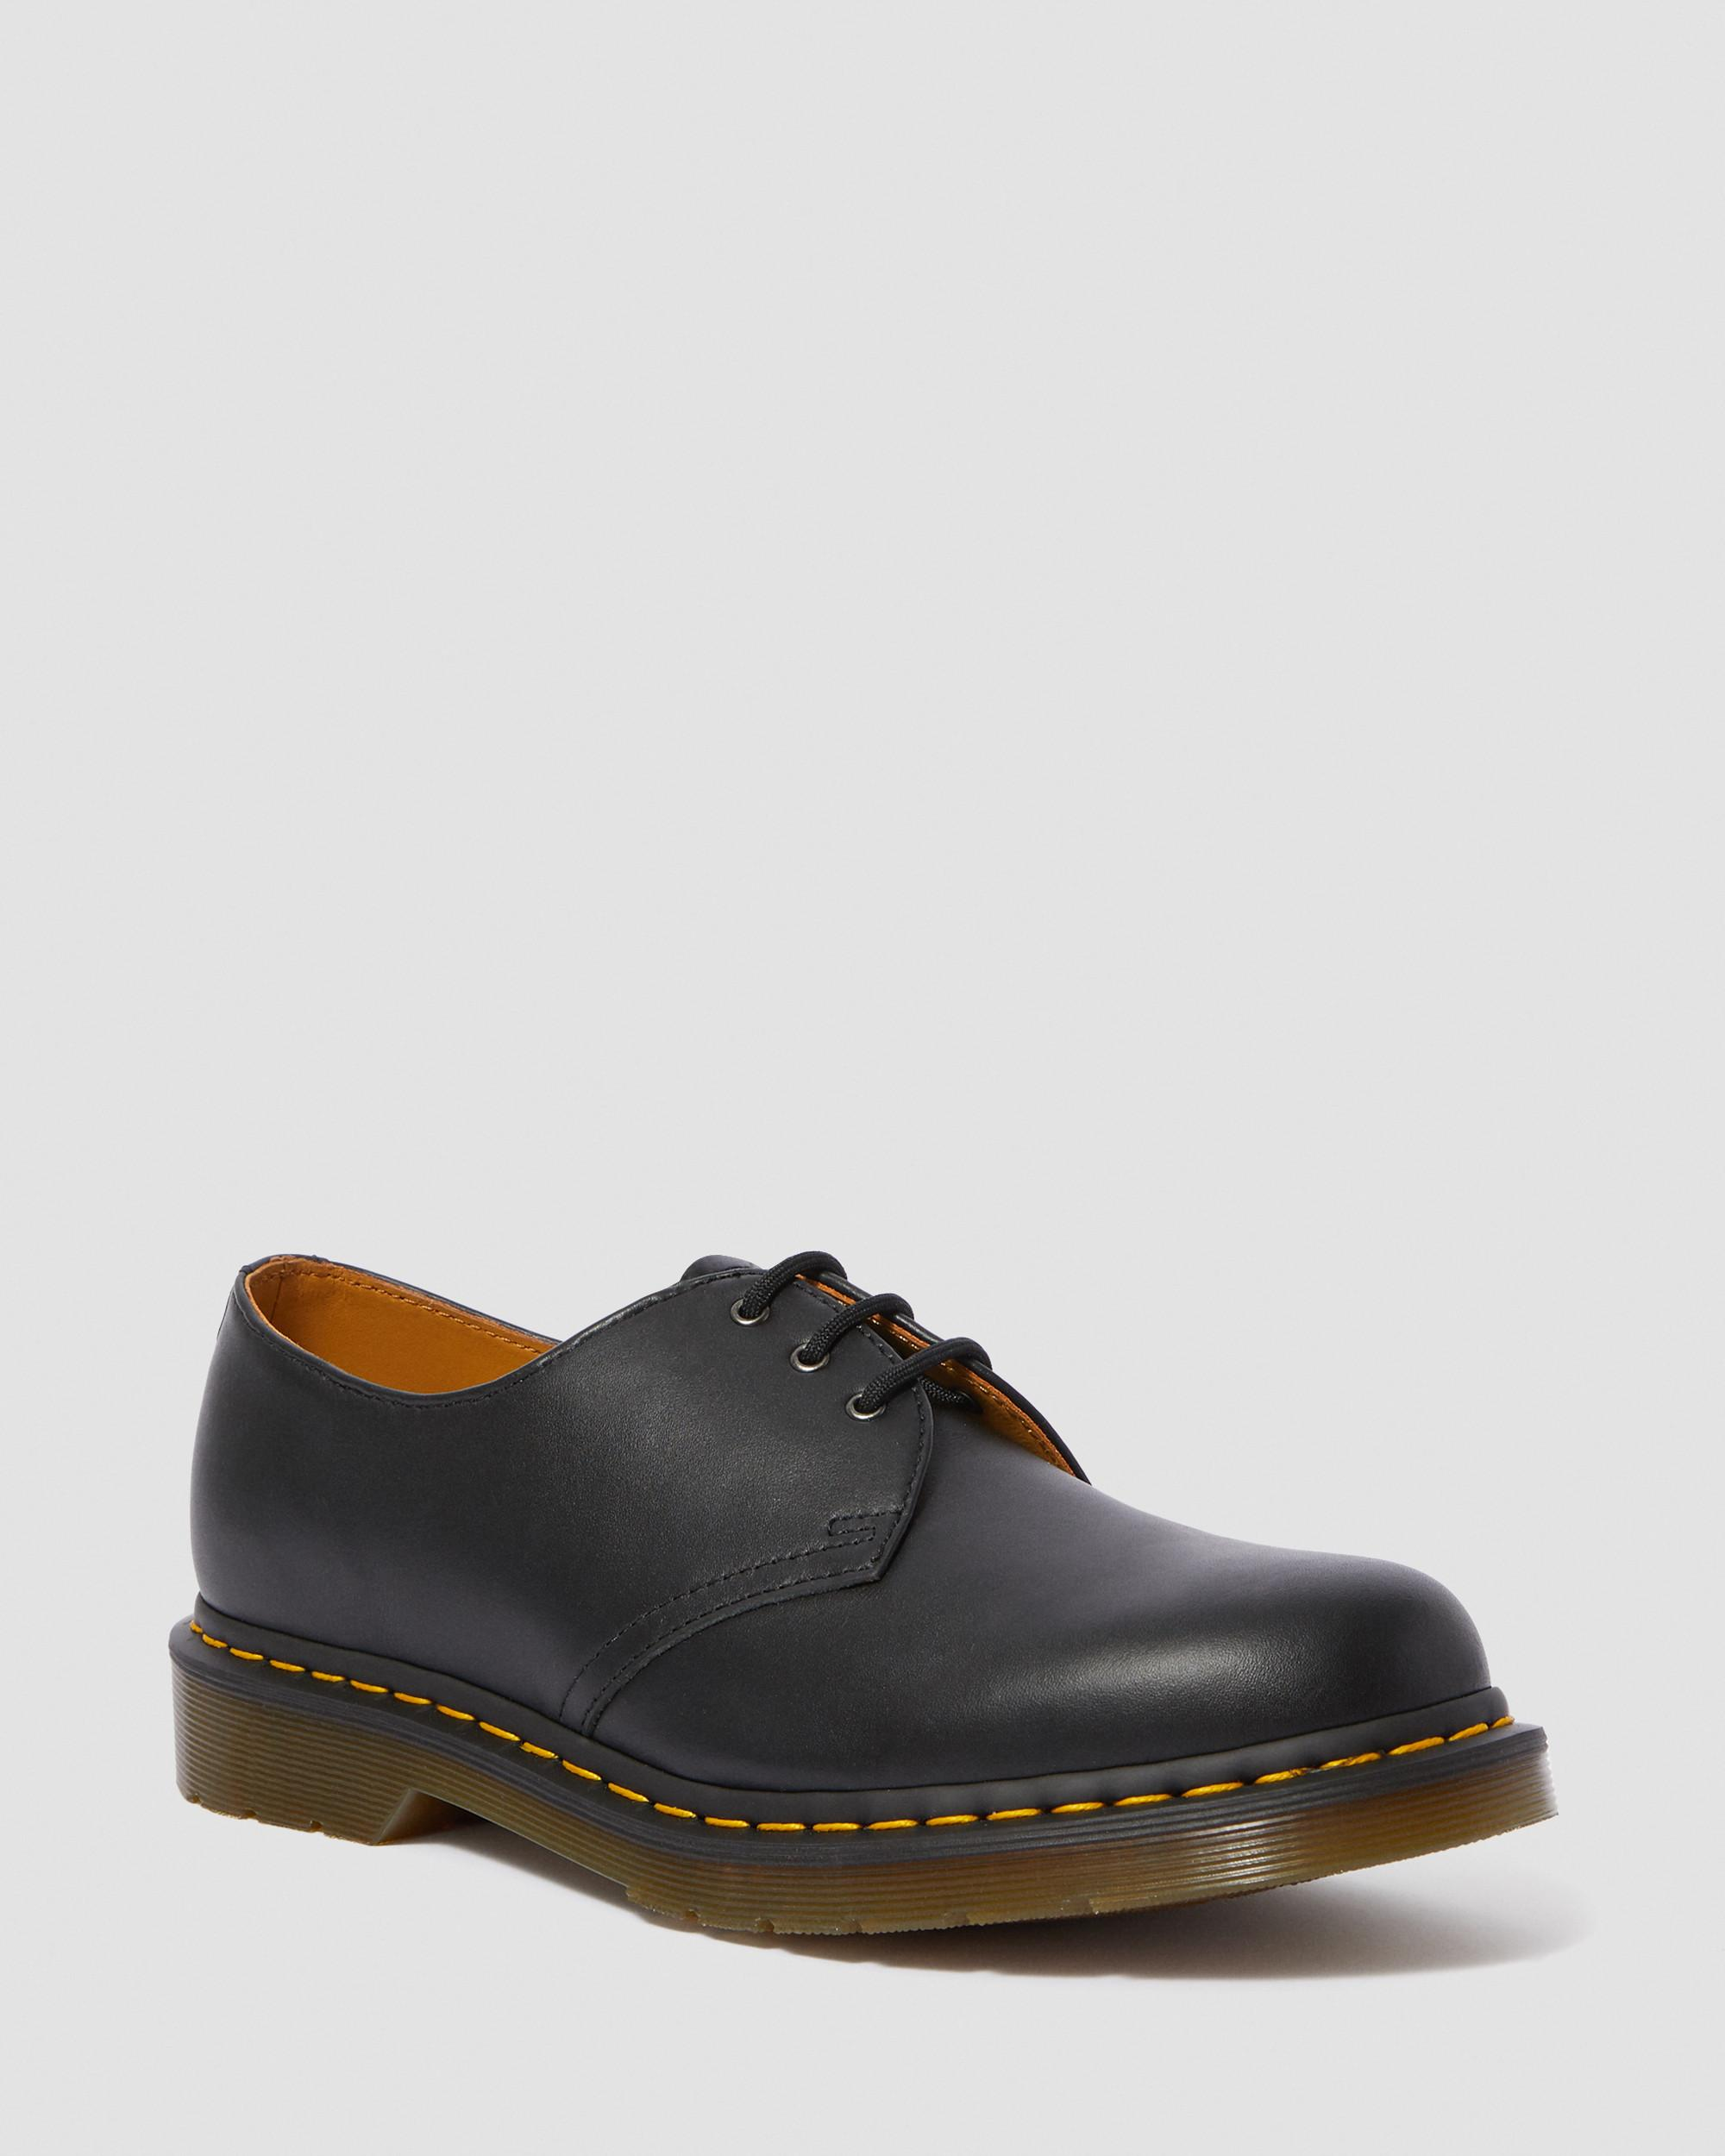 Dr martens 1461 nappa in 2019 | Fashion, Doc martens outfit